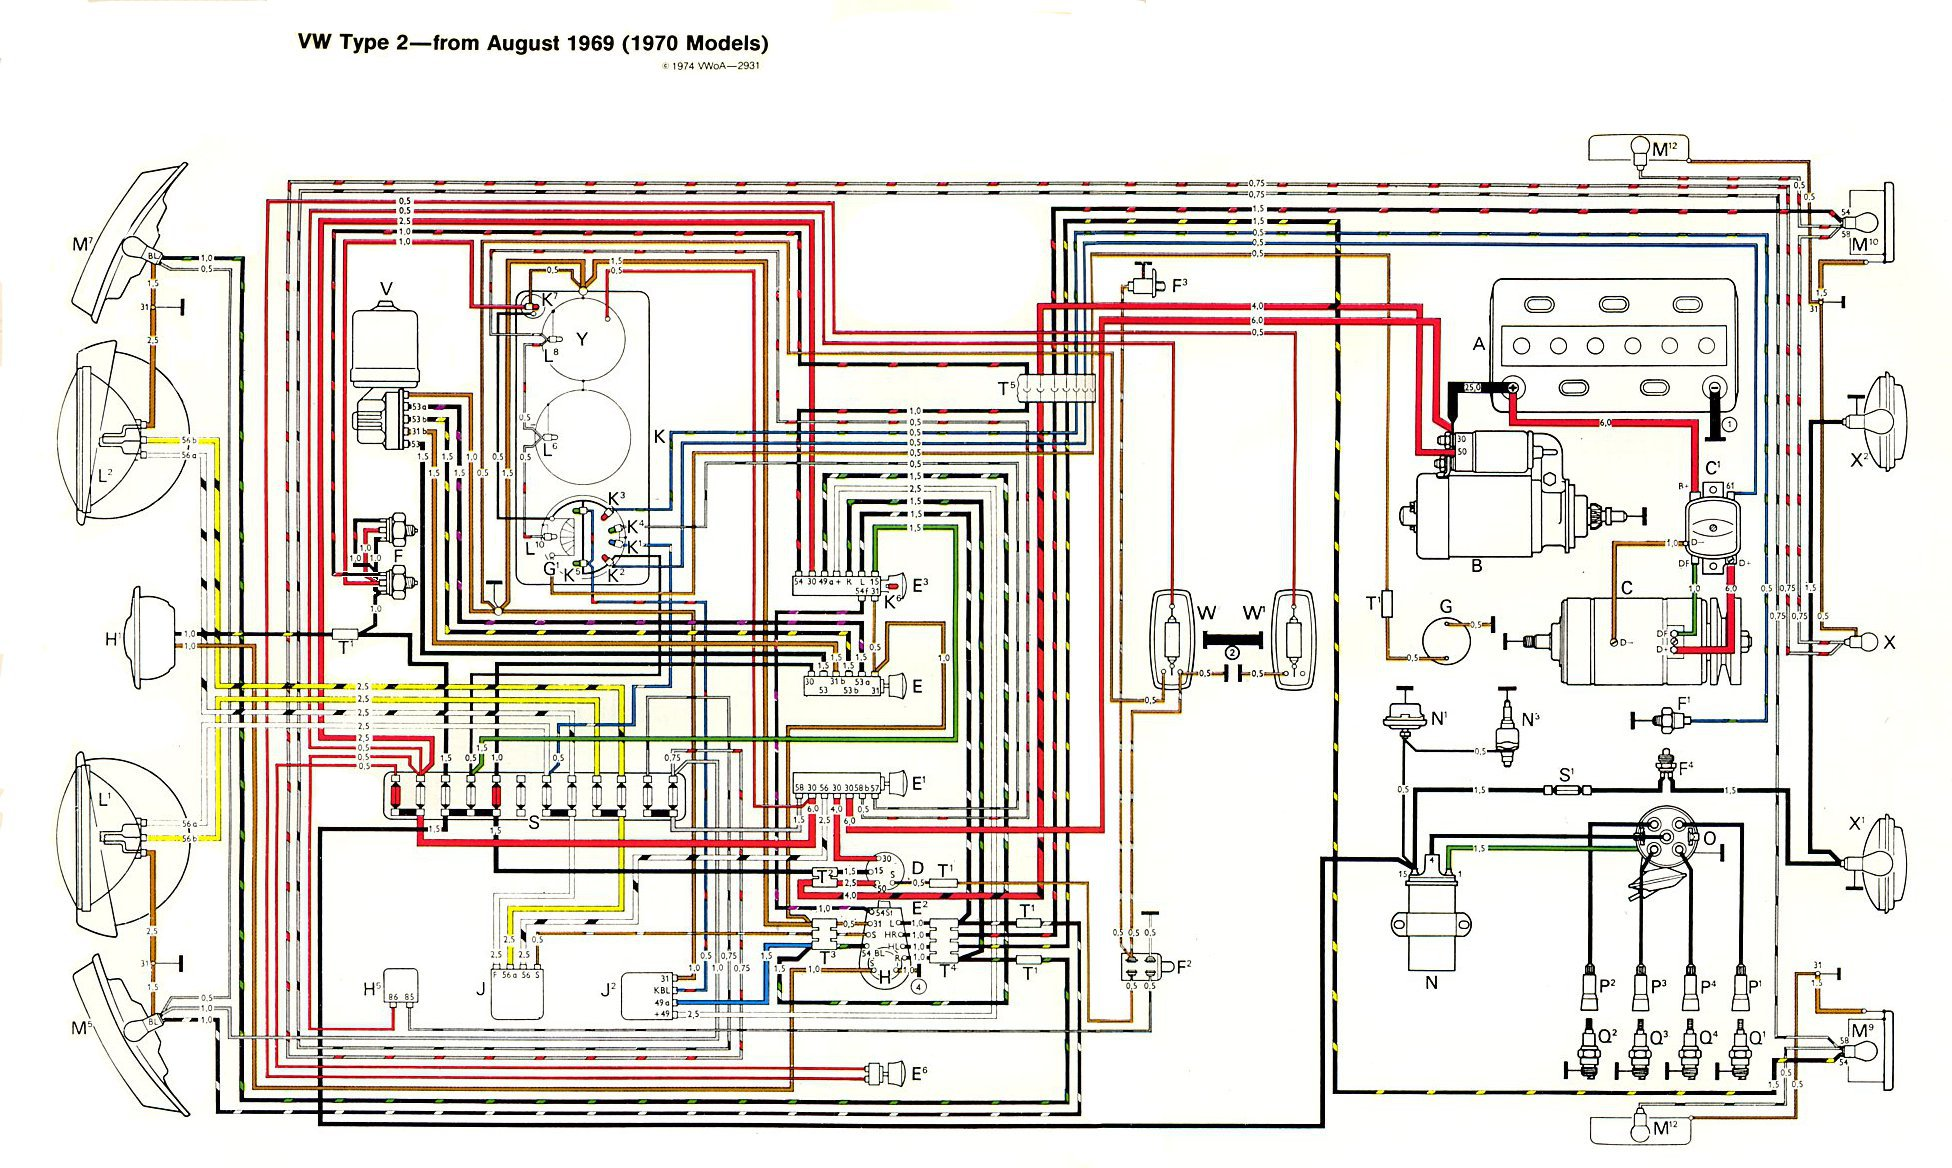 baybus_70 thesamba com type 2 wiring diagrams 914 wiring diagram at readyjetset.co